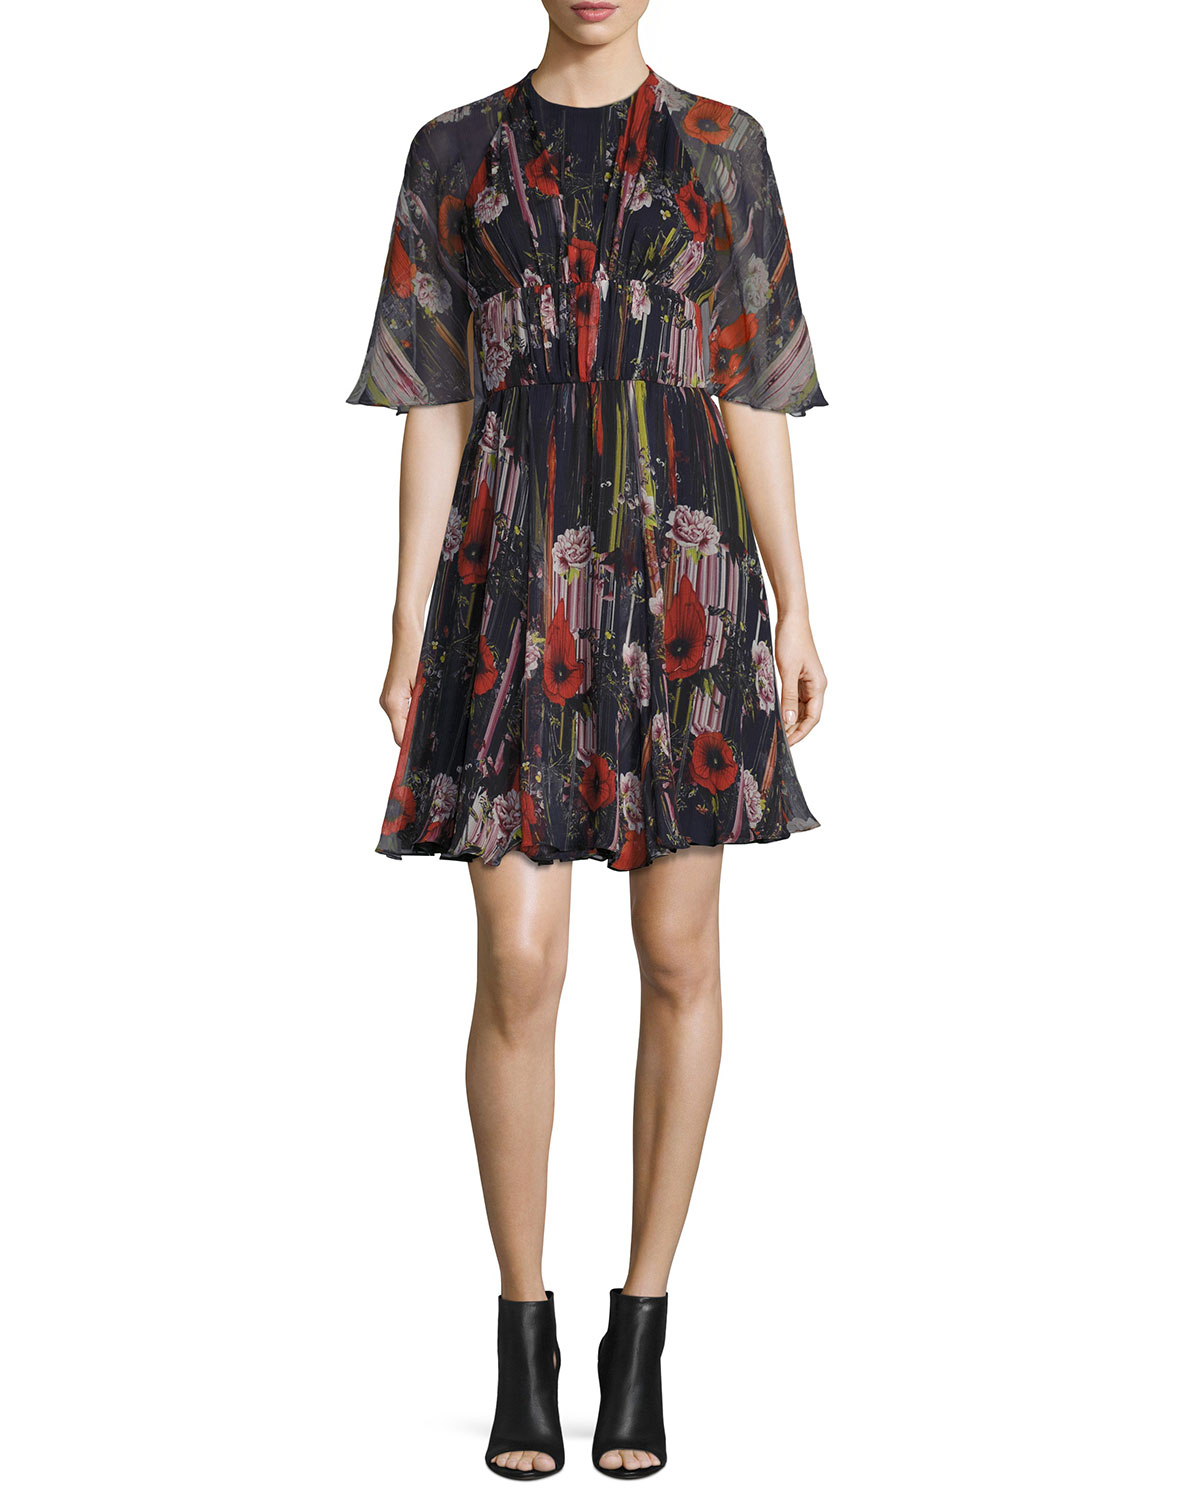 Floral Half-Sleeve Cocktail Dress, Black/Multi